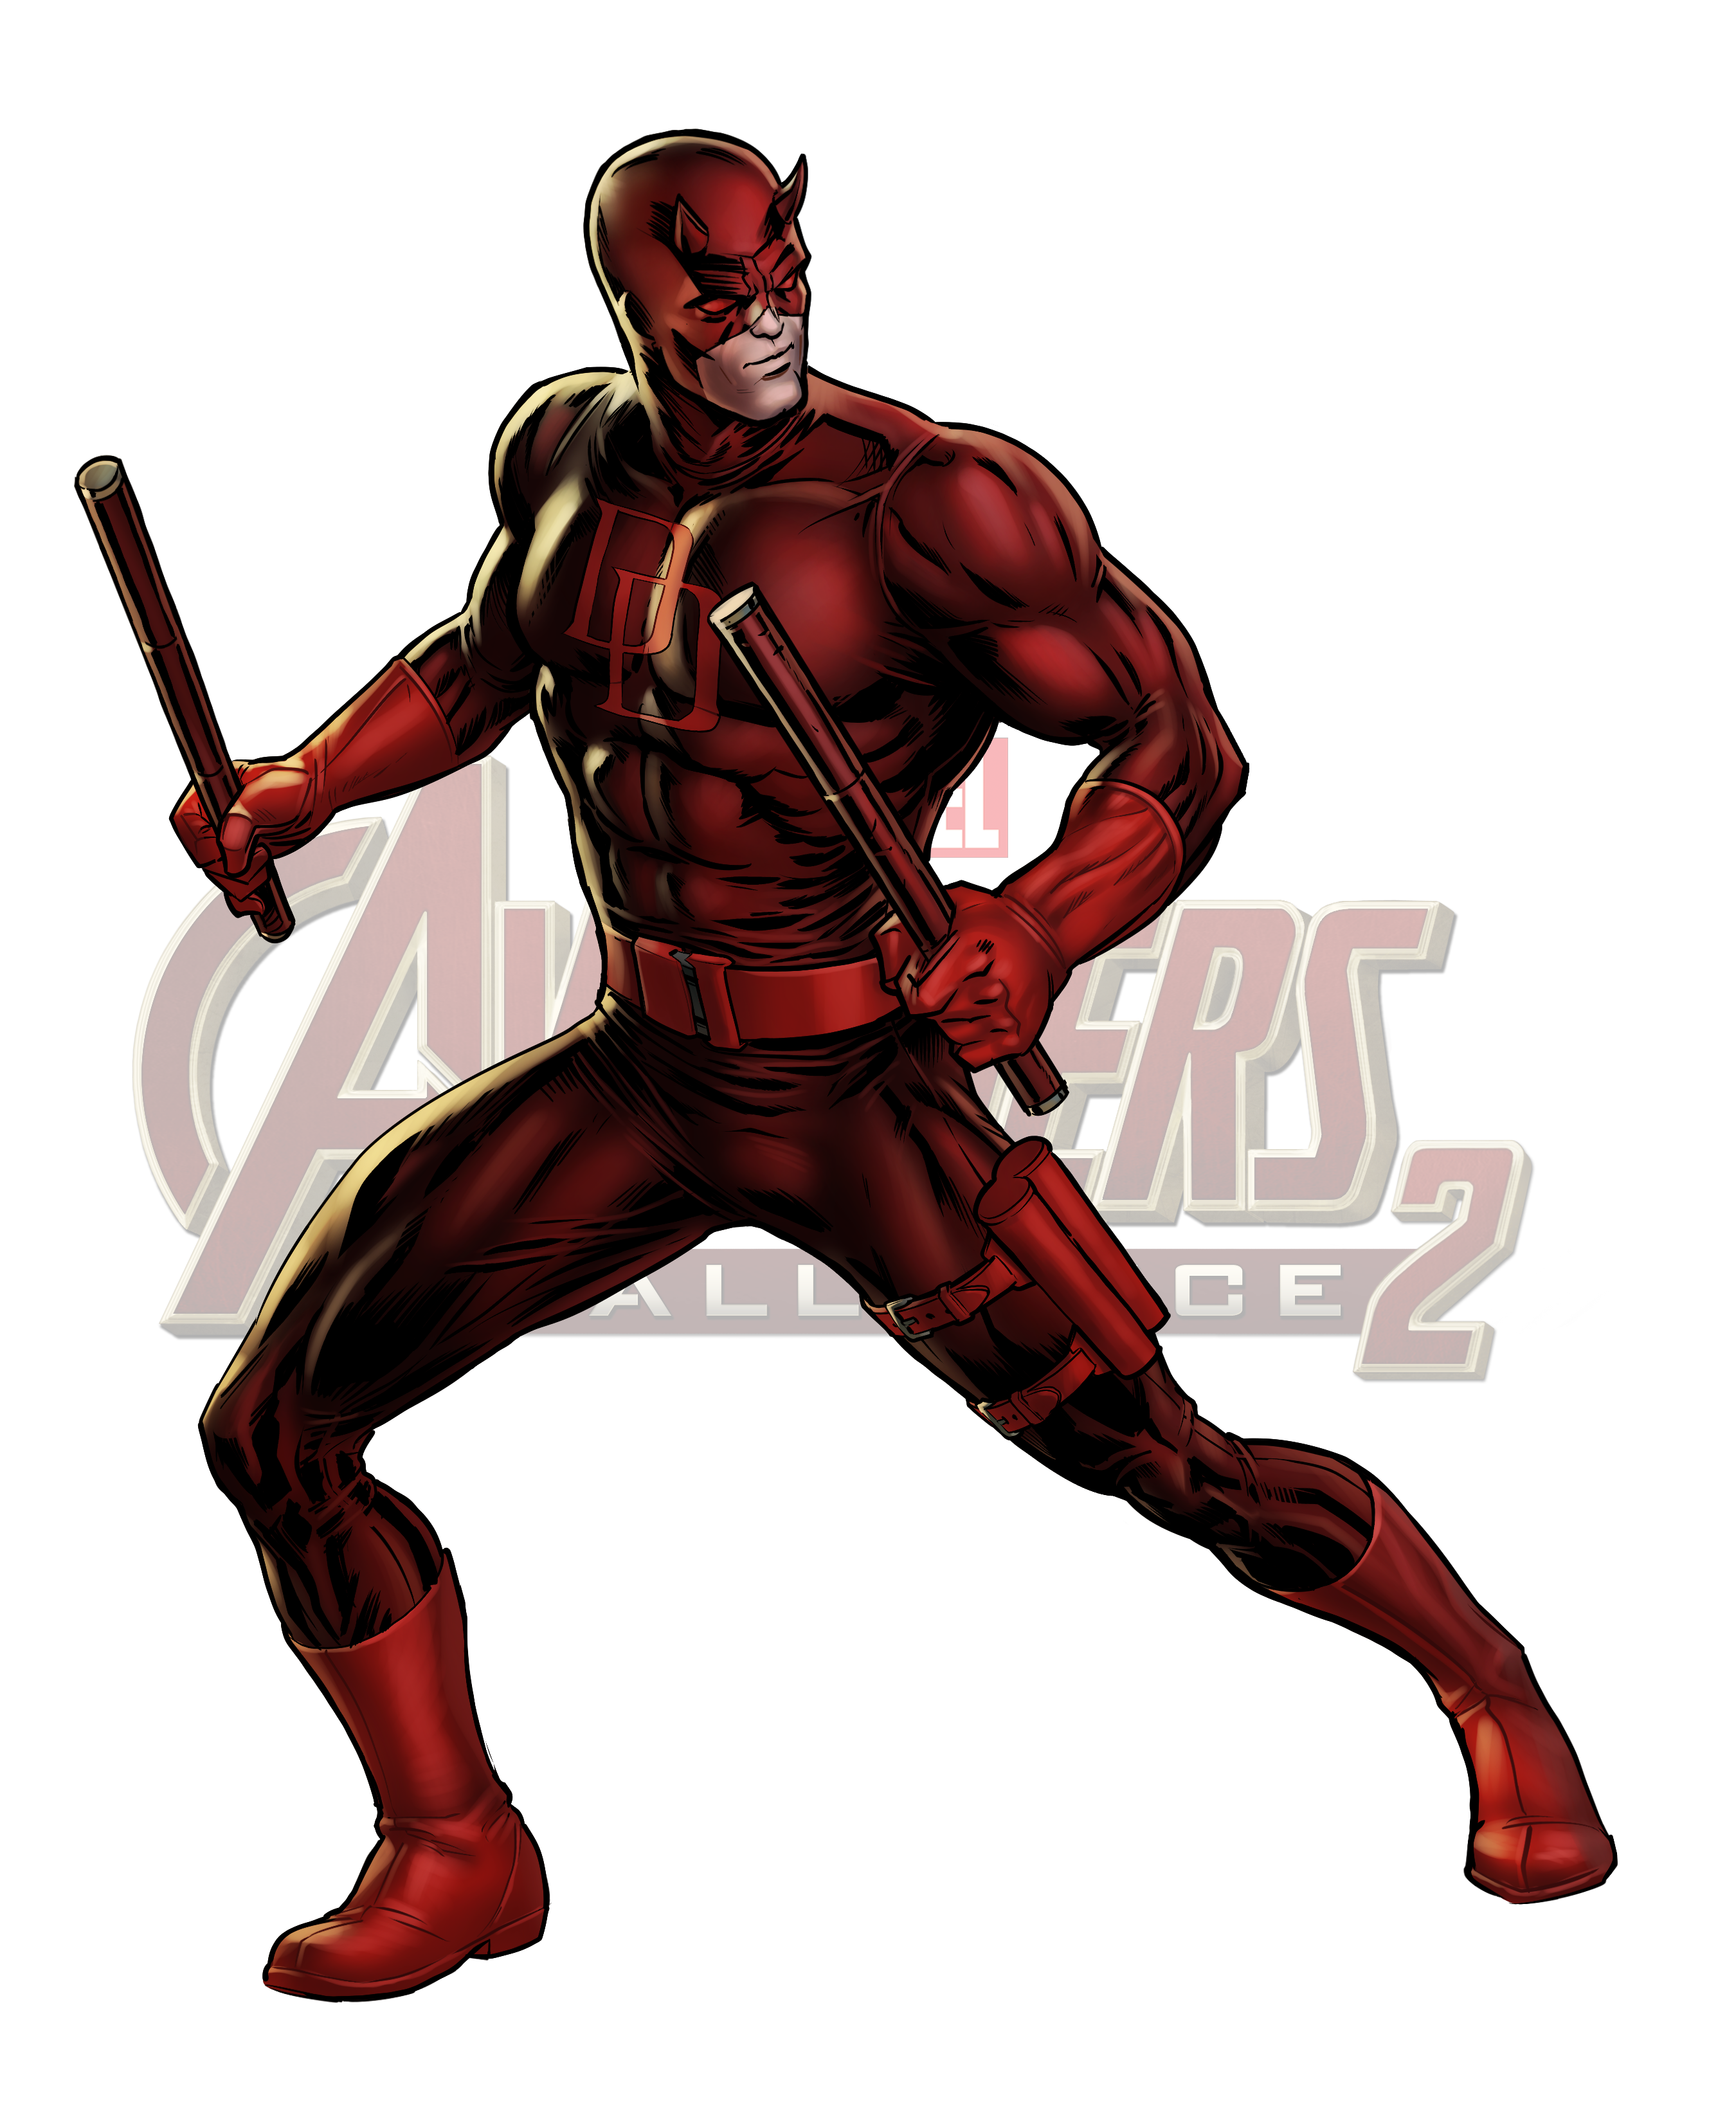 Daredevil png. Image icon marvel avengers